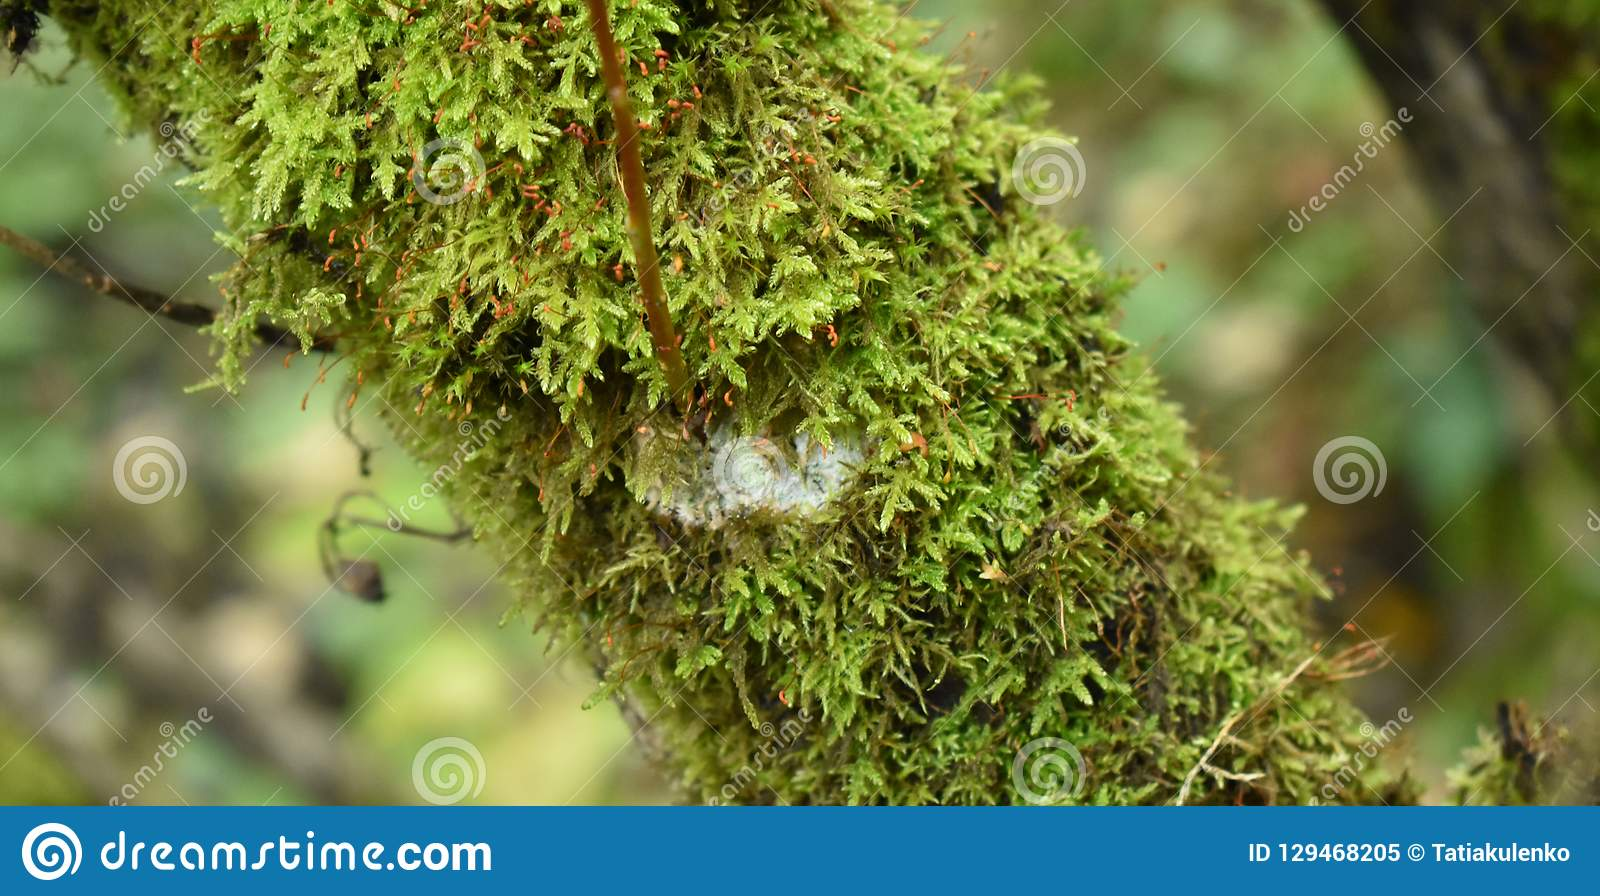 Green moss on the tree. Biology and plants in the forest